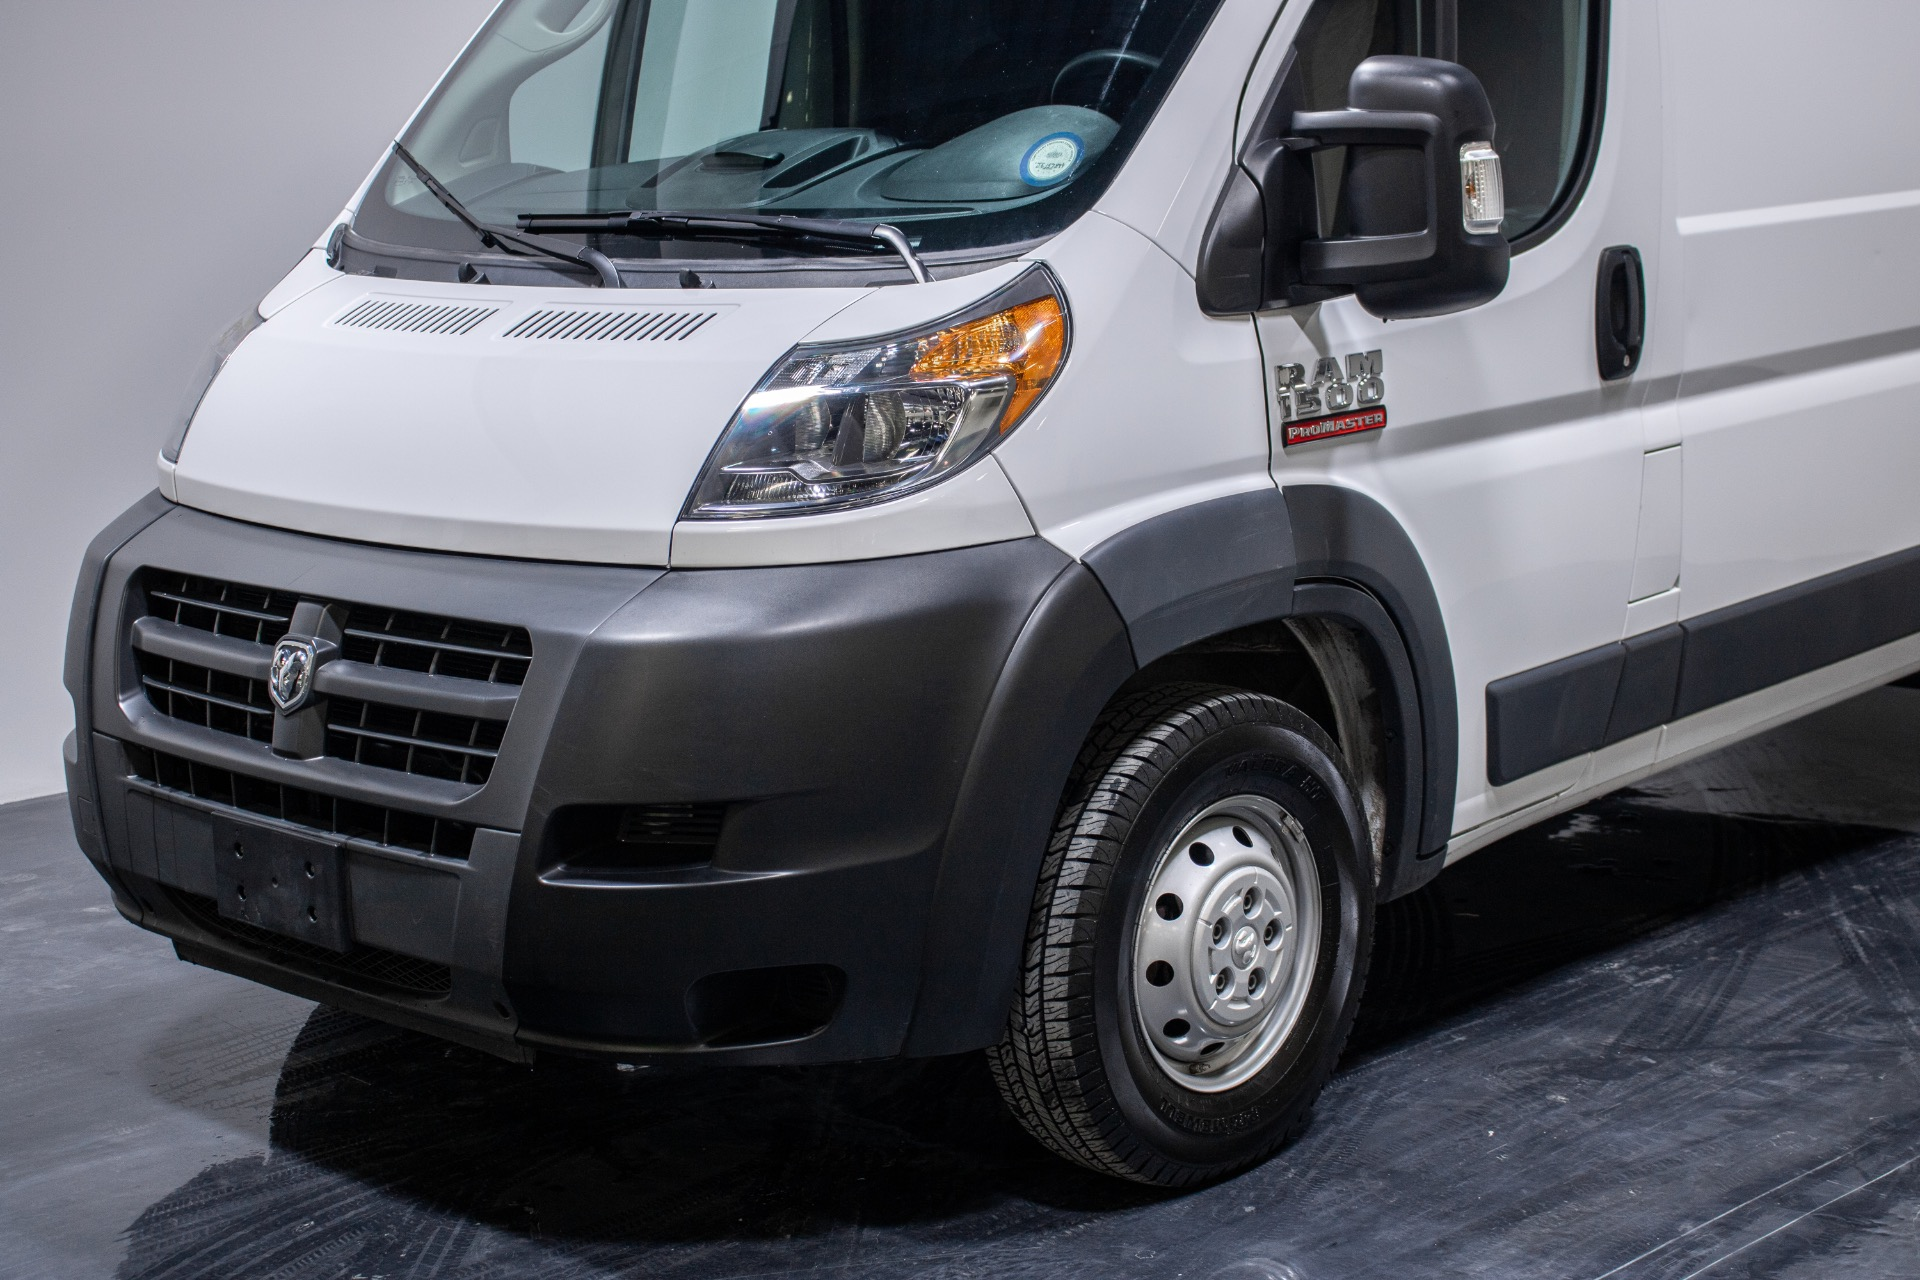 Used 2018 Ram ProMaster Cargo Van 1500 High Roof Van 3D for sale Sold at Perfect Auto Collection in Akron OH 44310 2